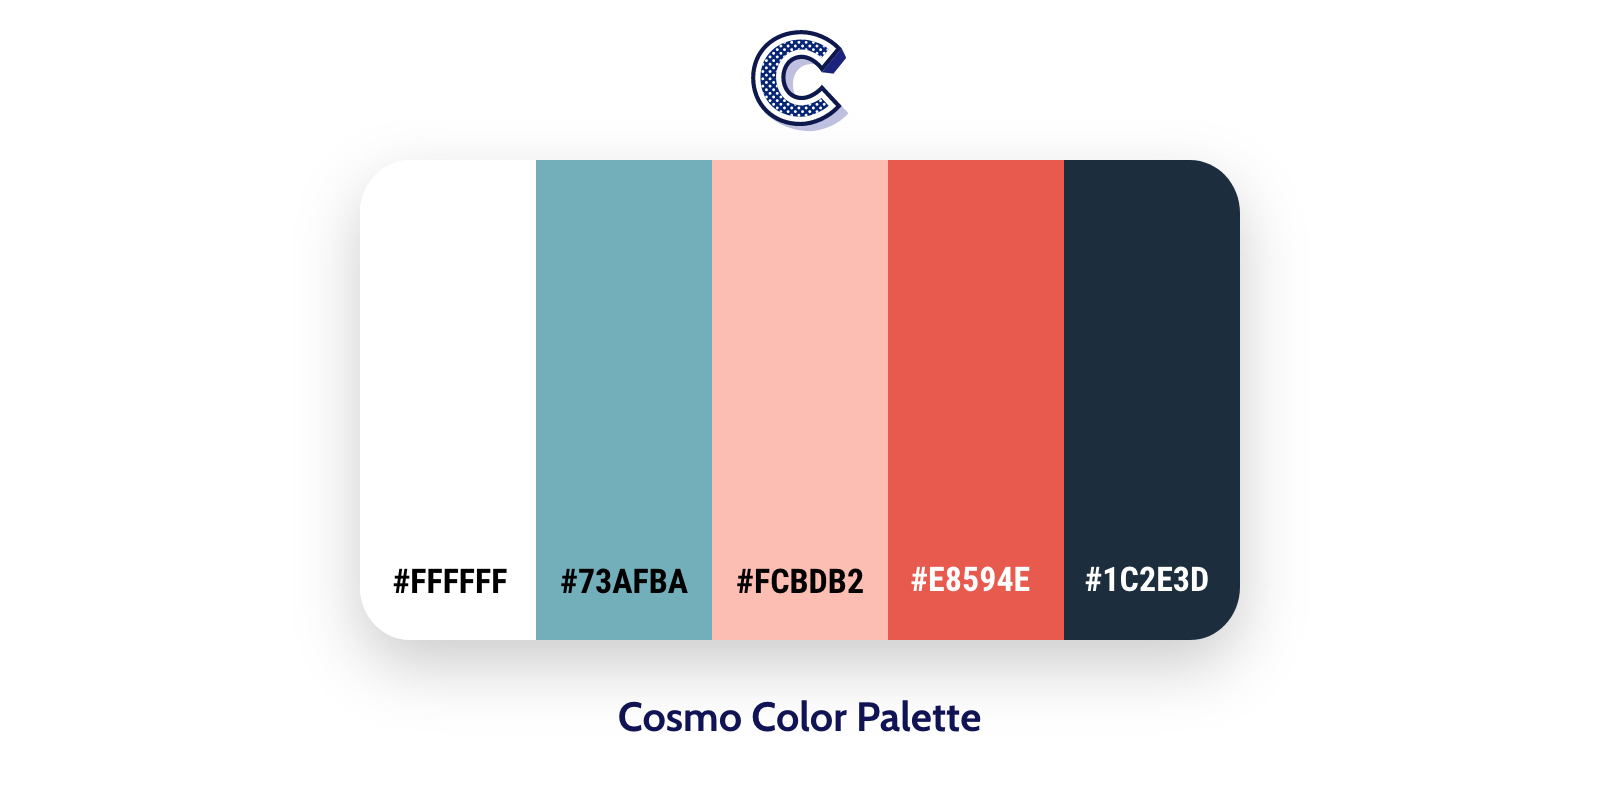 the featured of cosmo color palette